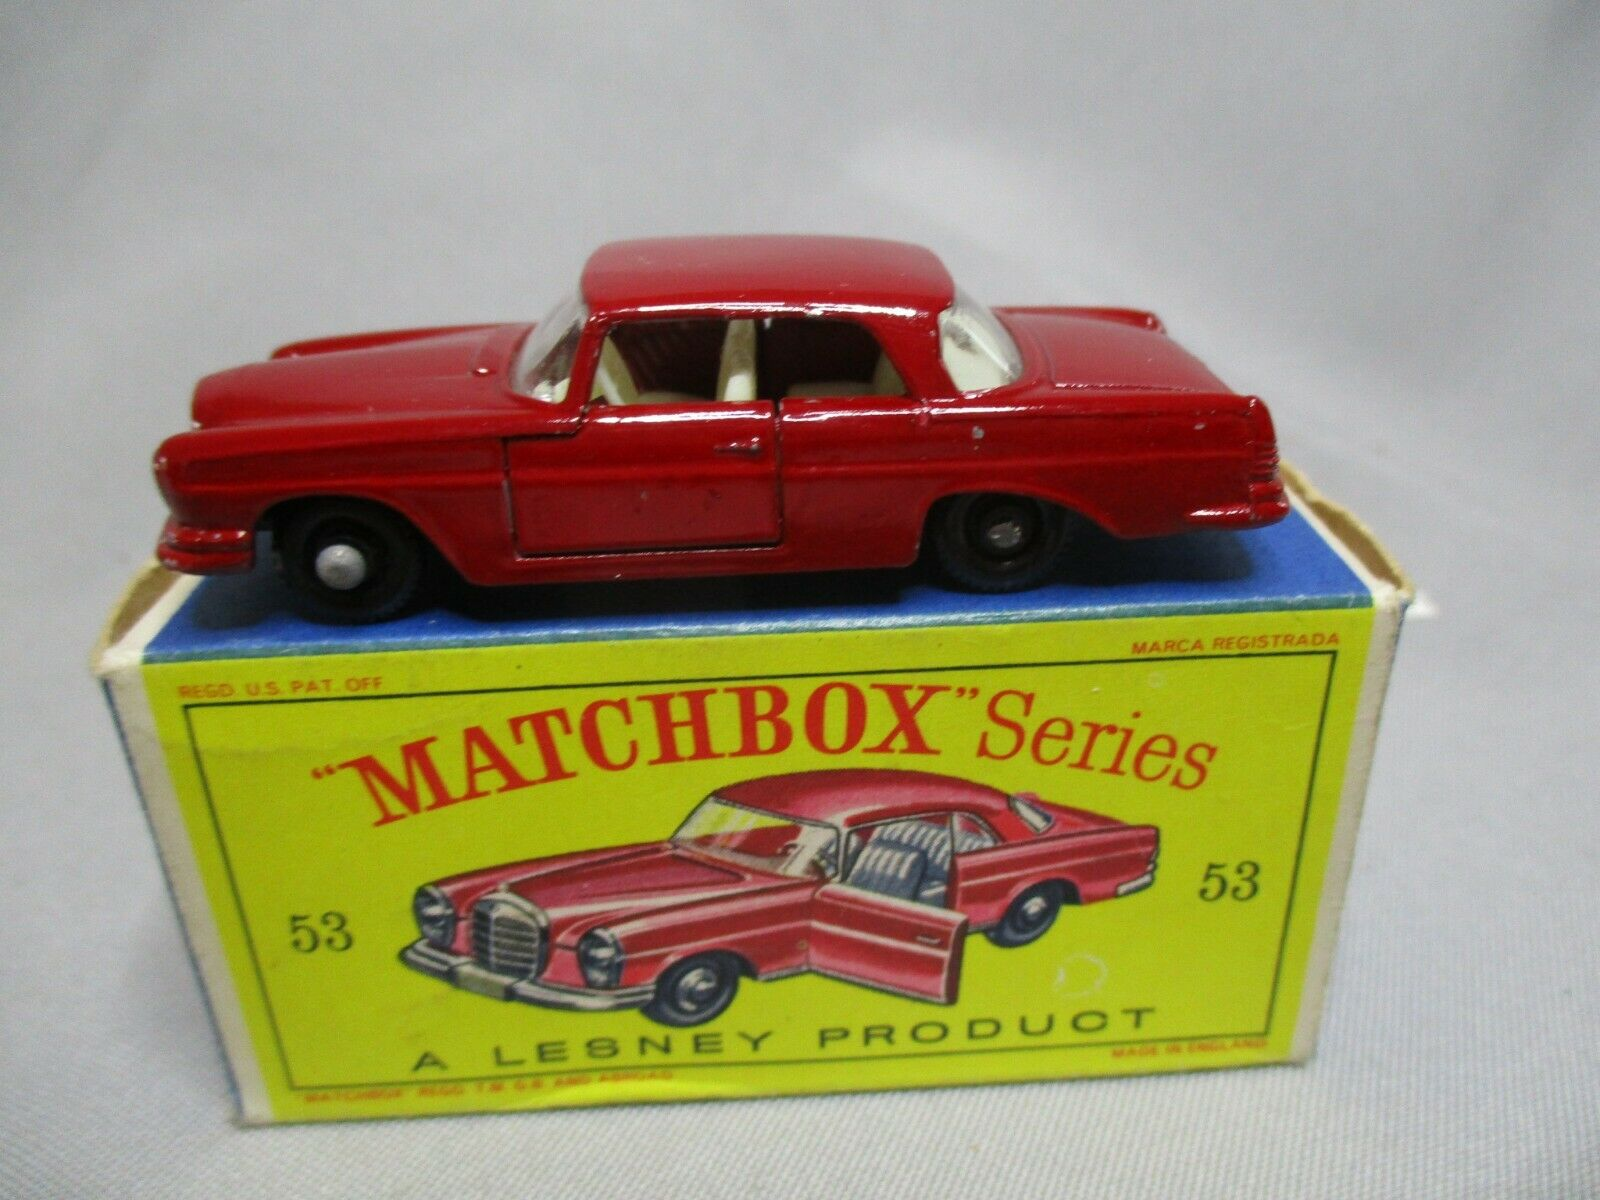 AJ813 MATCHBOX LESNEY MERCEDES BENZ COUPE 220 SE Réf 53 BON ETAT